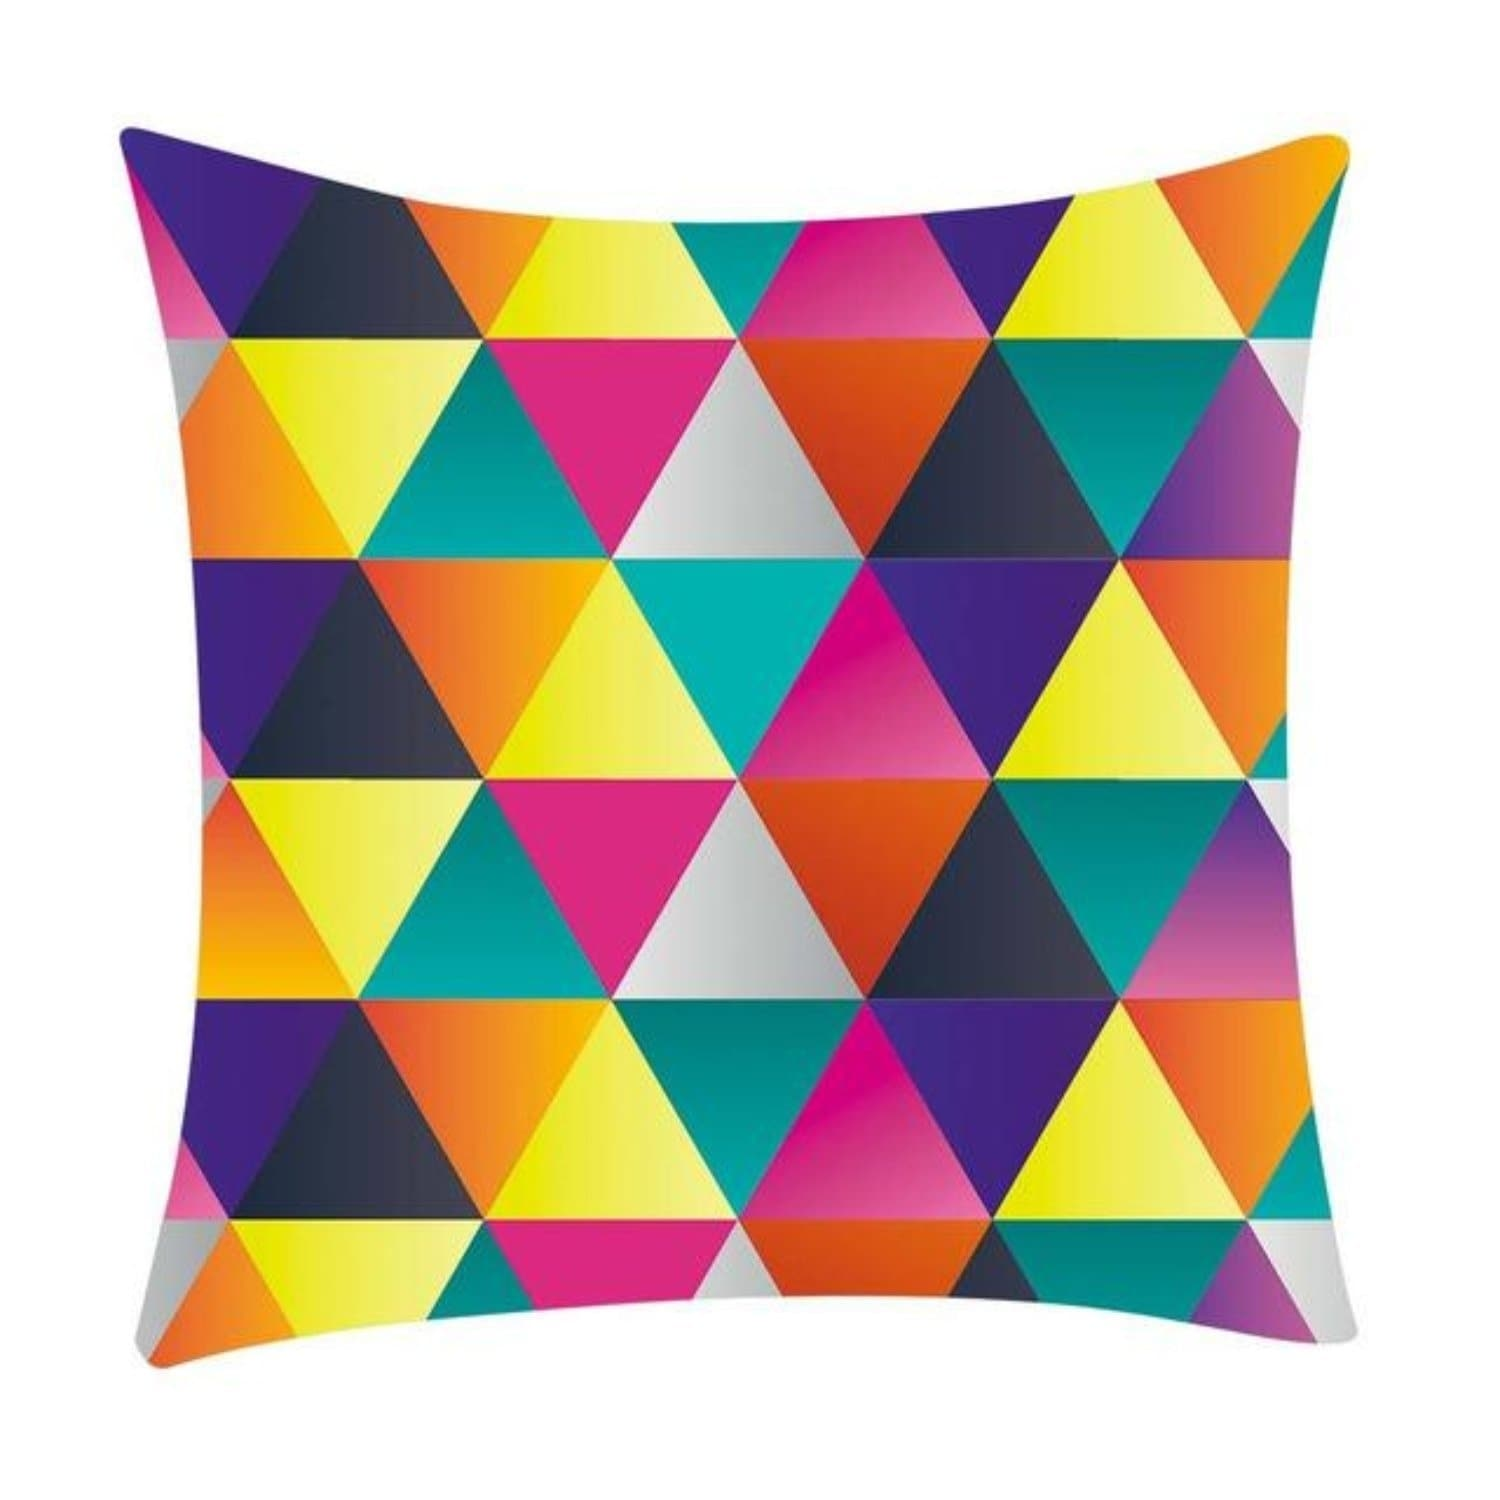 how to use decorative pillows shop geometry throw pillow case decorative pillows cover 21299704 how to use throw pillows on a bed throw pillow case decorative pillows